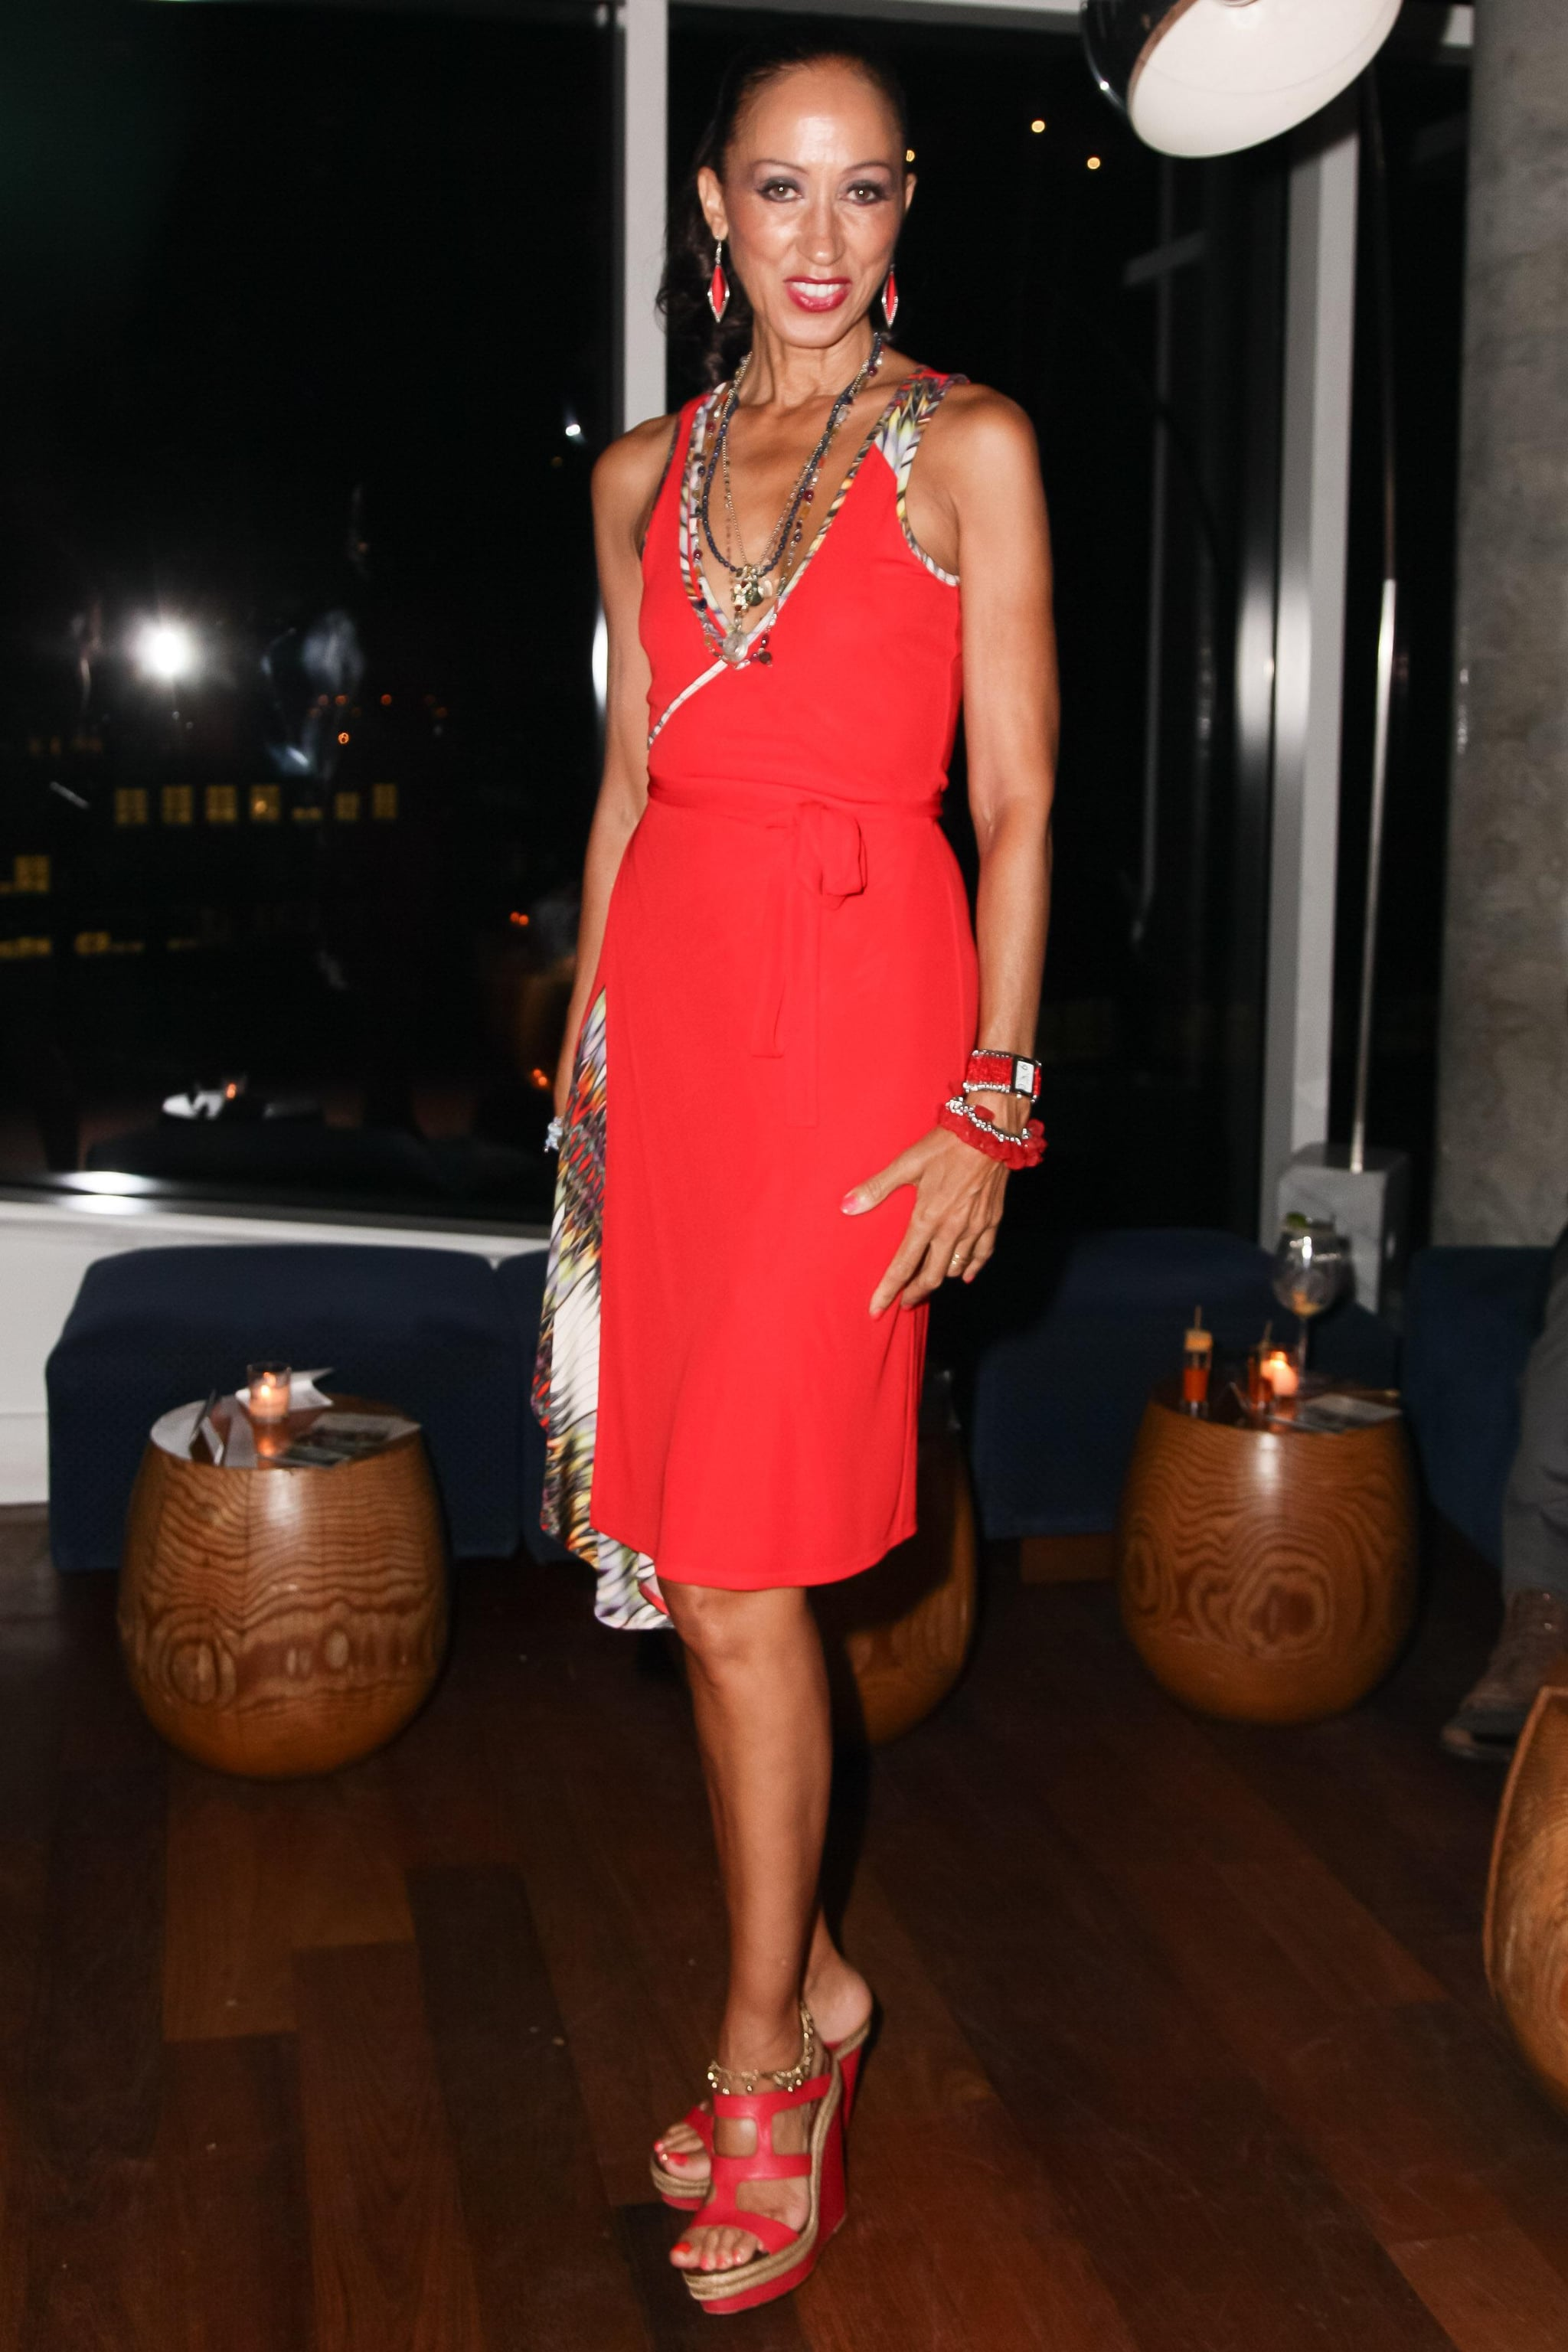 Pat Cleveland arrived for the Prince Avalanche after-party in a red hot design.